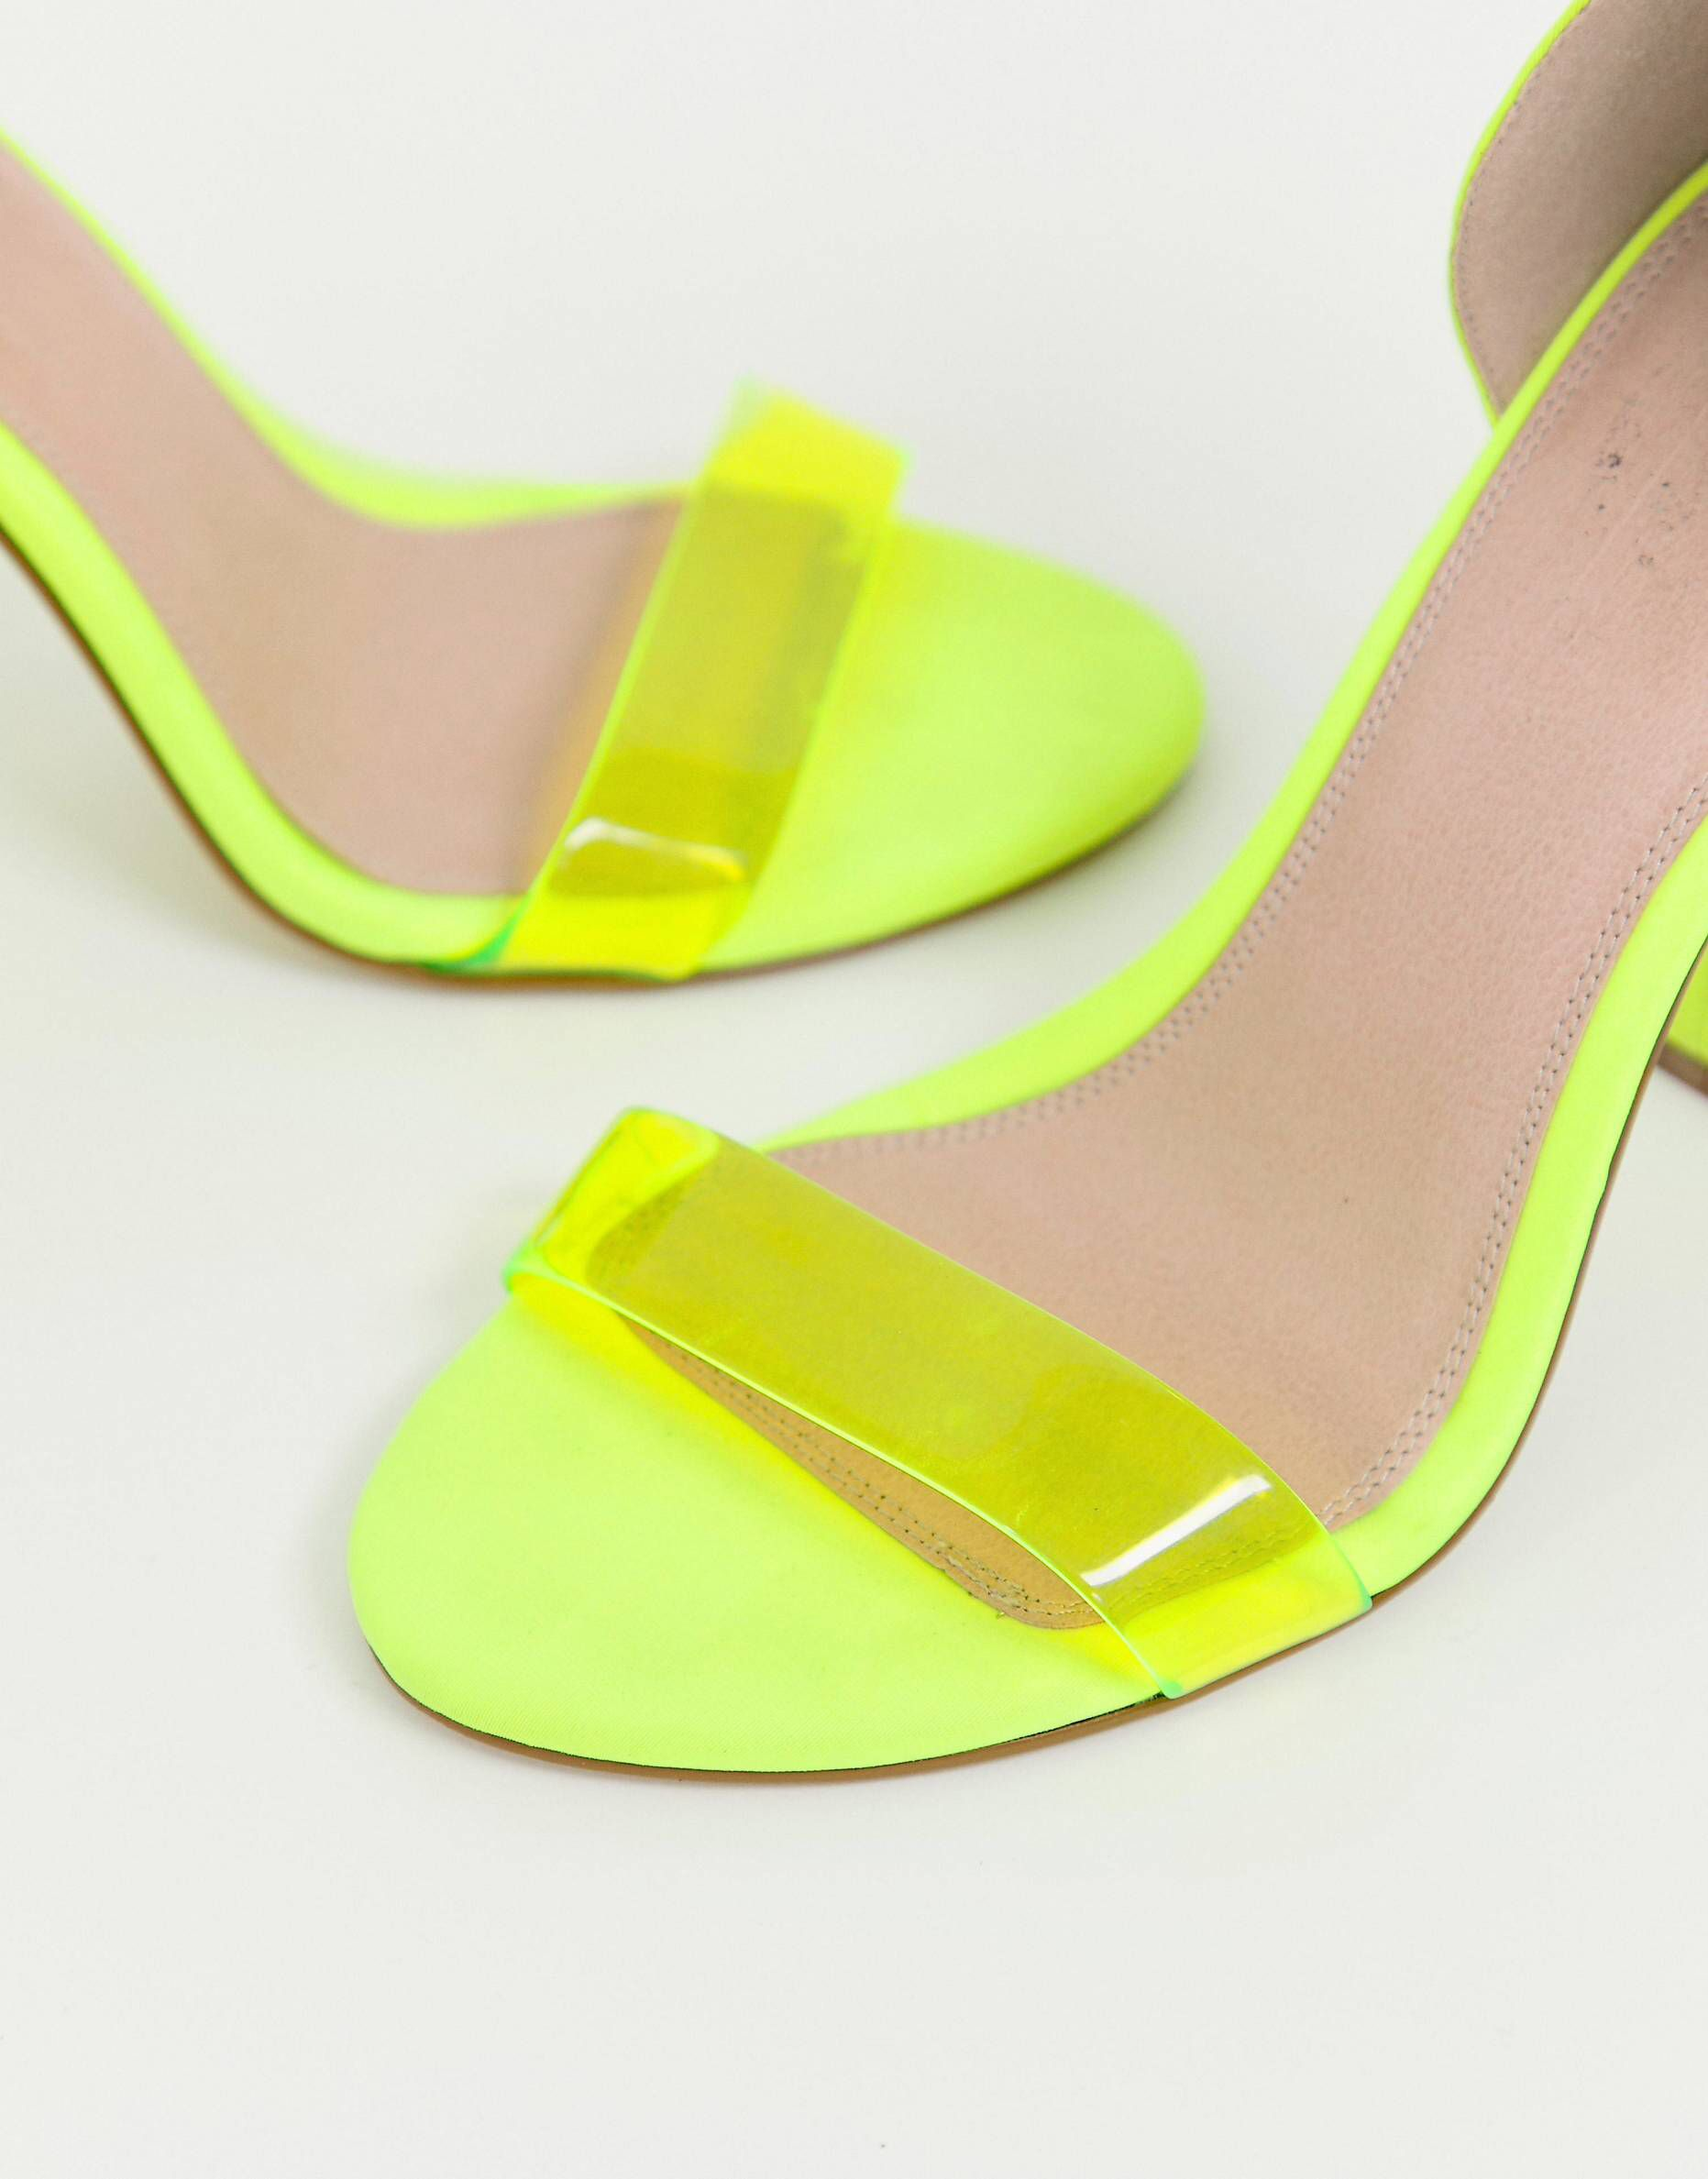 b1c3a69e0c1166 DESIGN Wide Fit Witness barely there block heeled sandals in neon yellow